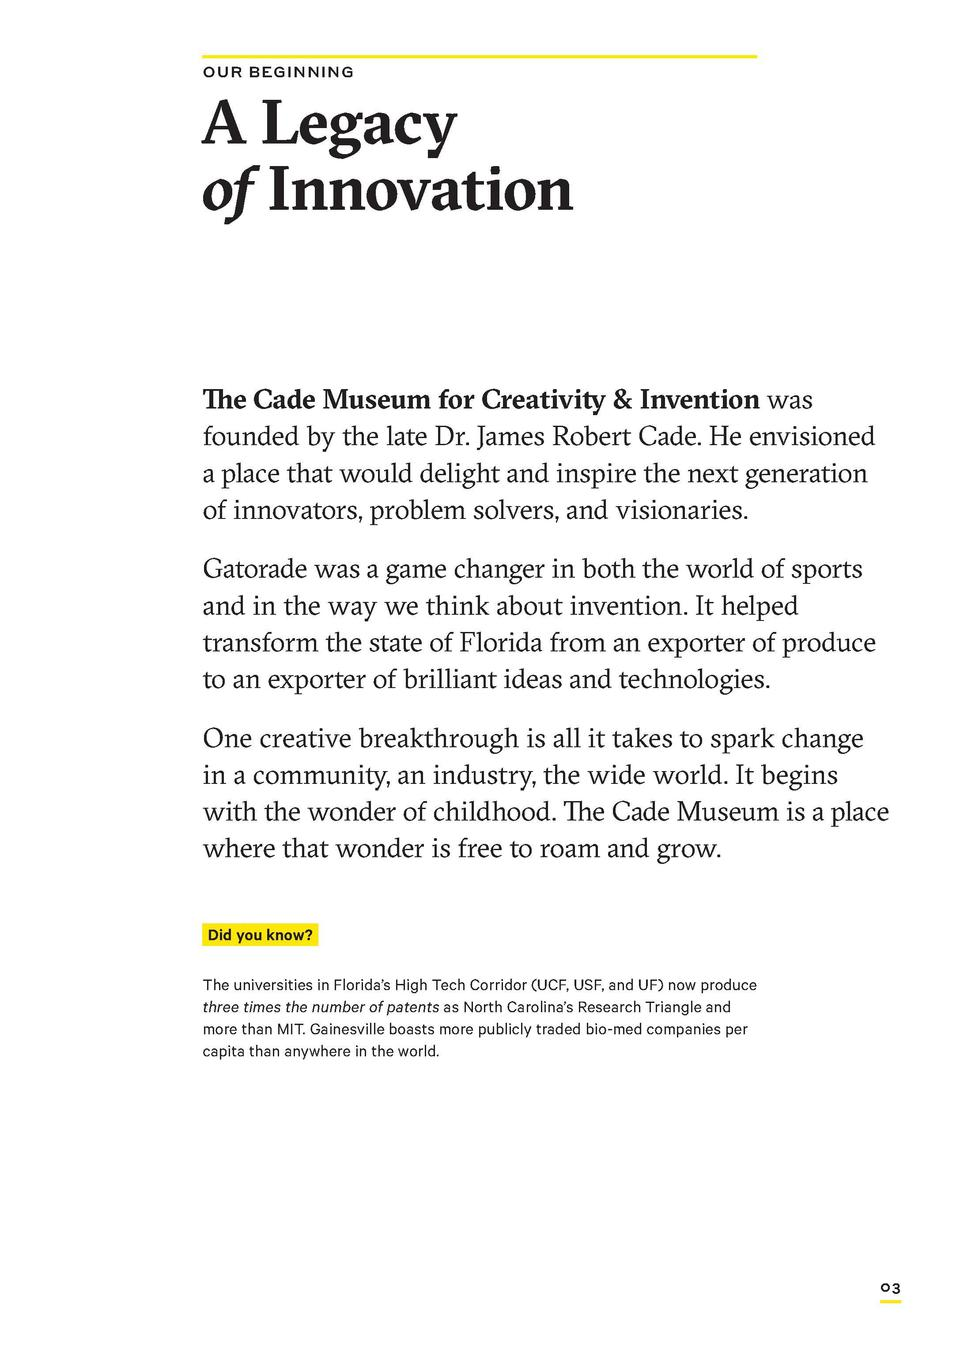 OUR BEGINNING  A Legacy of Innovation The Cade Museum for Creativity   Invention was founded by the late Dr. James Robert ...